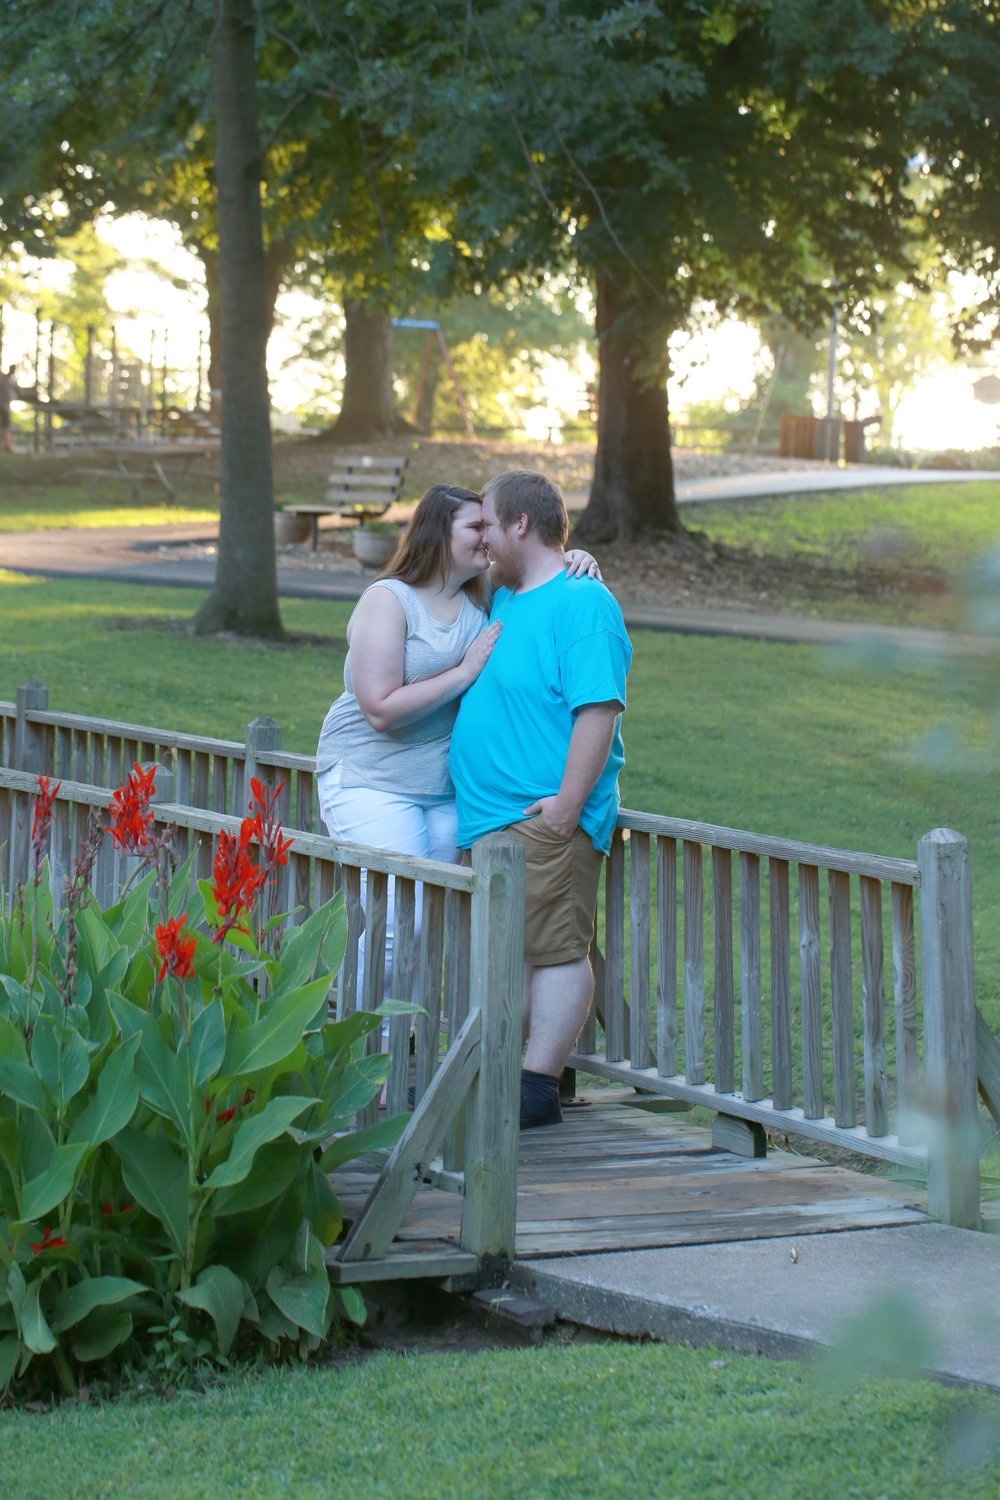 destite_jonathan_engagement_0146.jpg